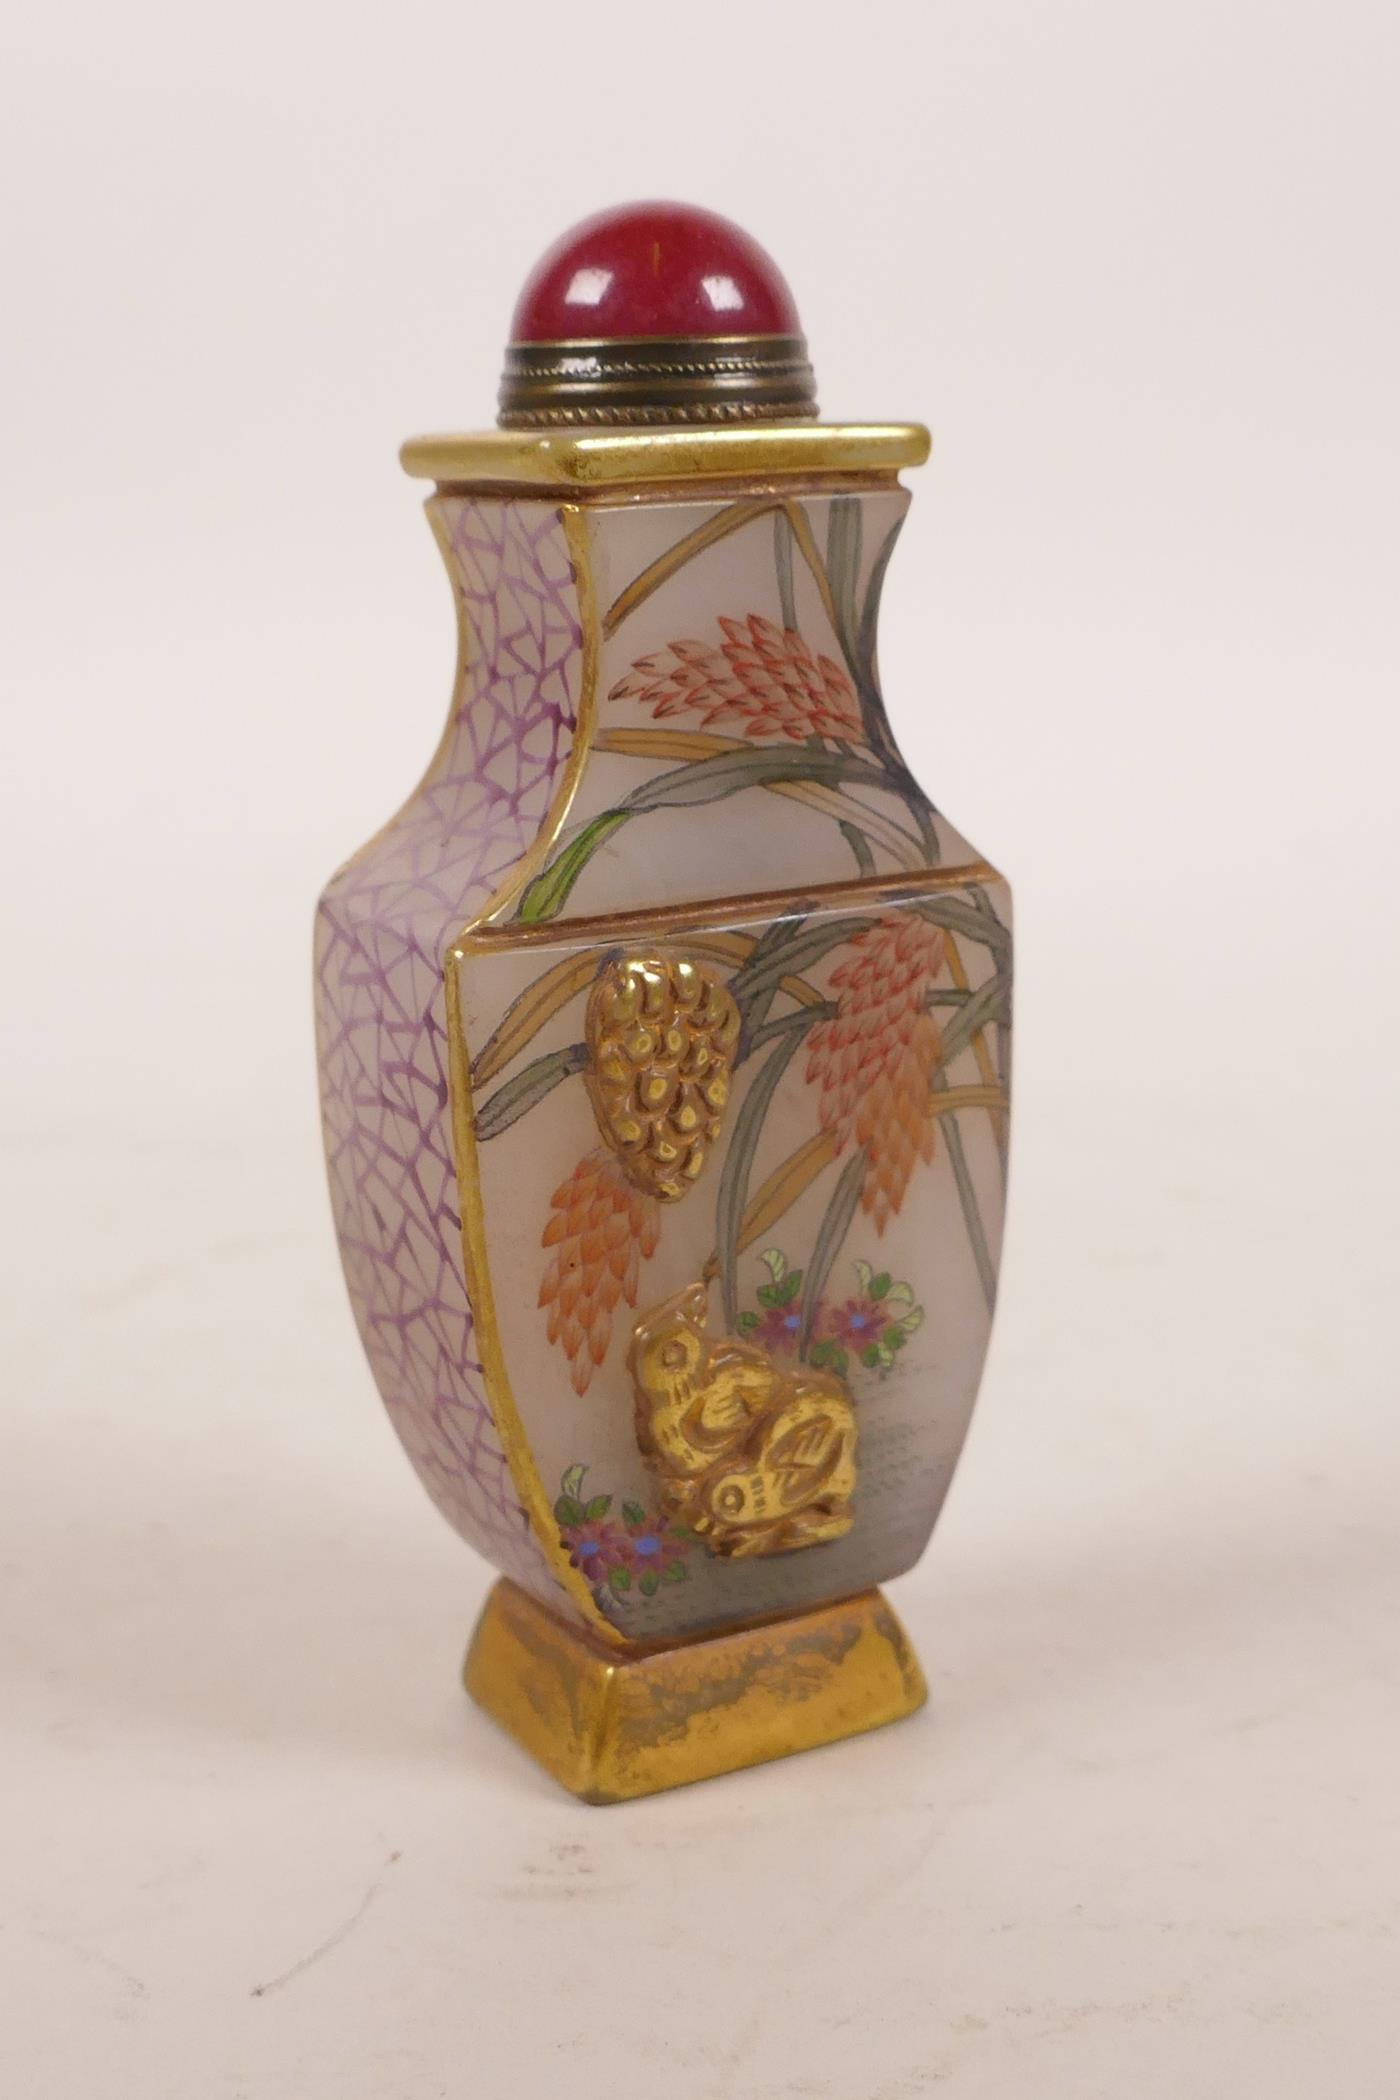 Lot 8 - A Chinese glass snuff bottle with enamelled and gilt decoration of birds and flowers, 6 character